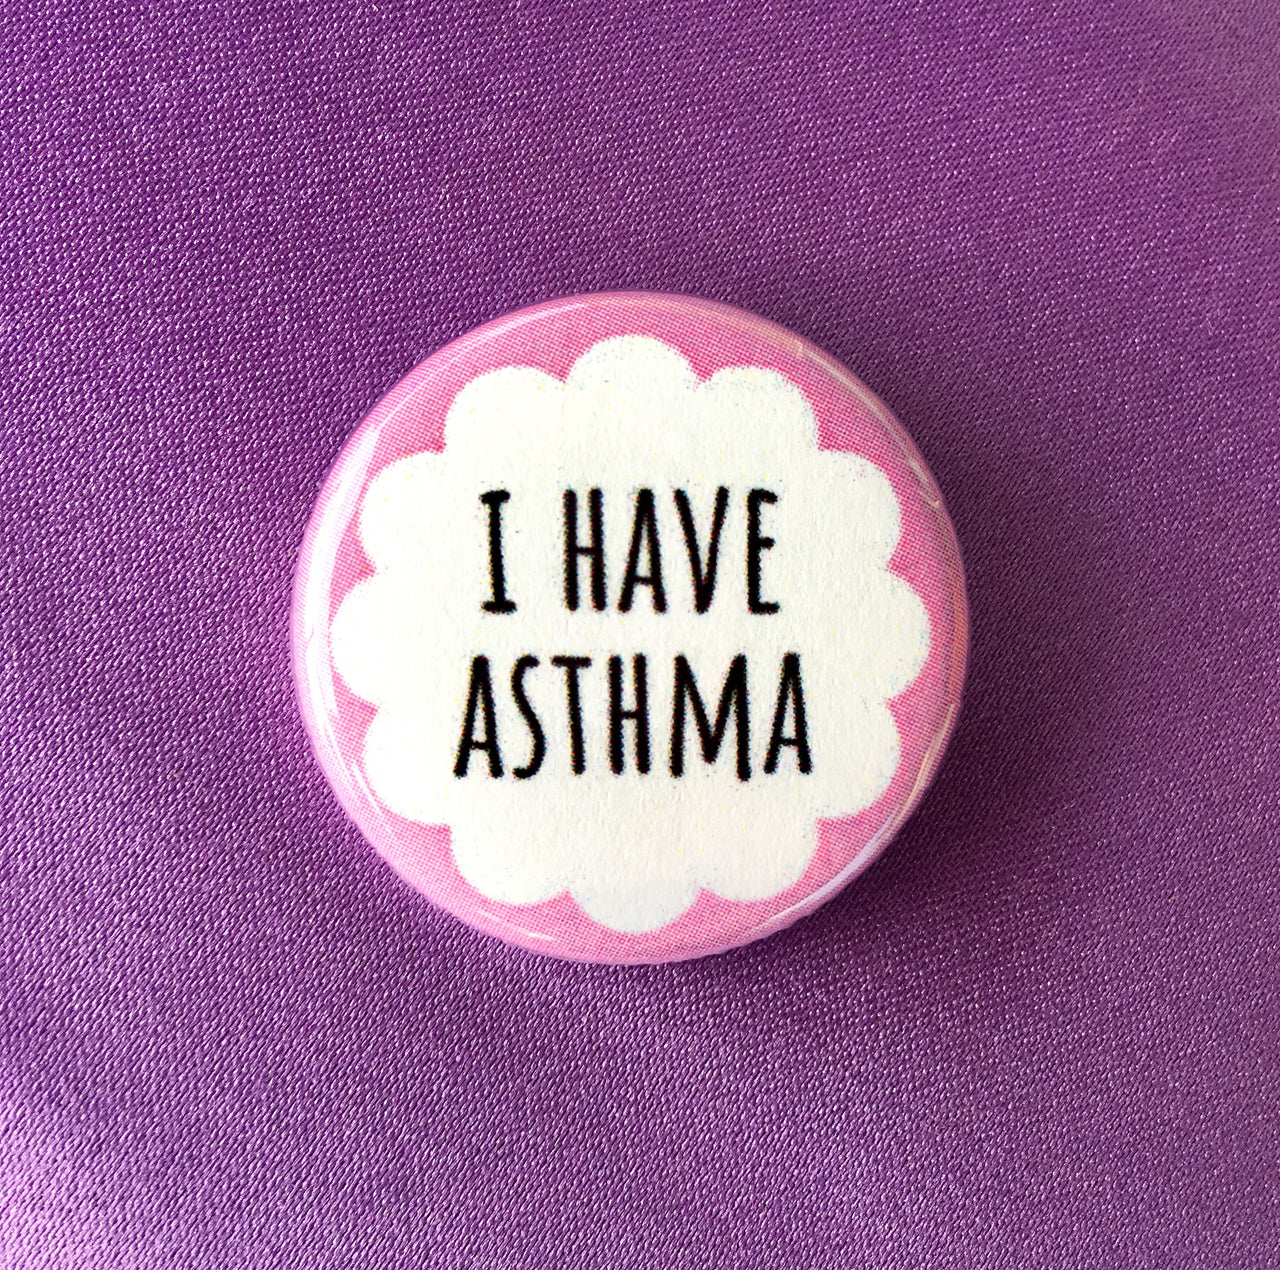 I have asthma - Radical Buttons